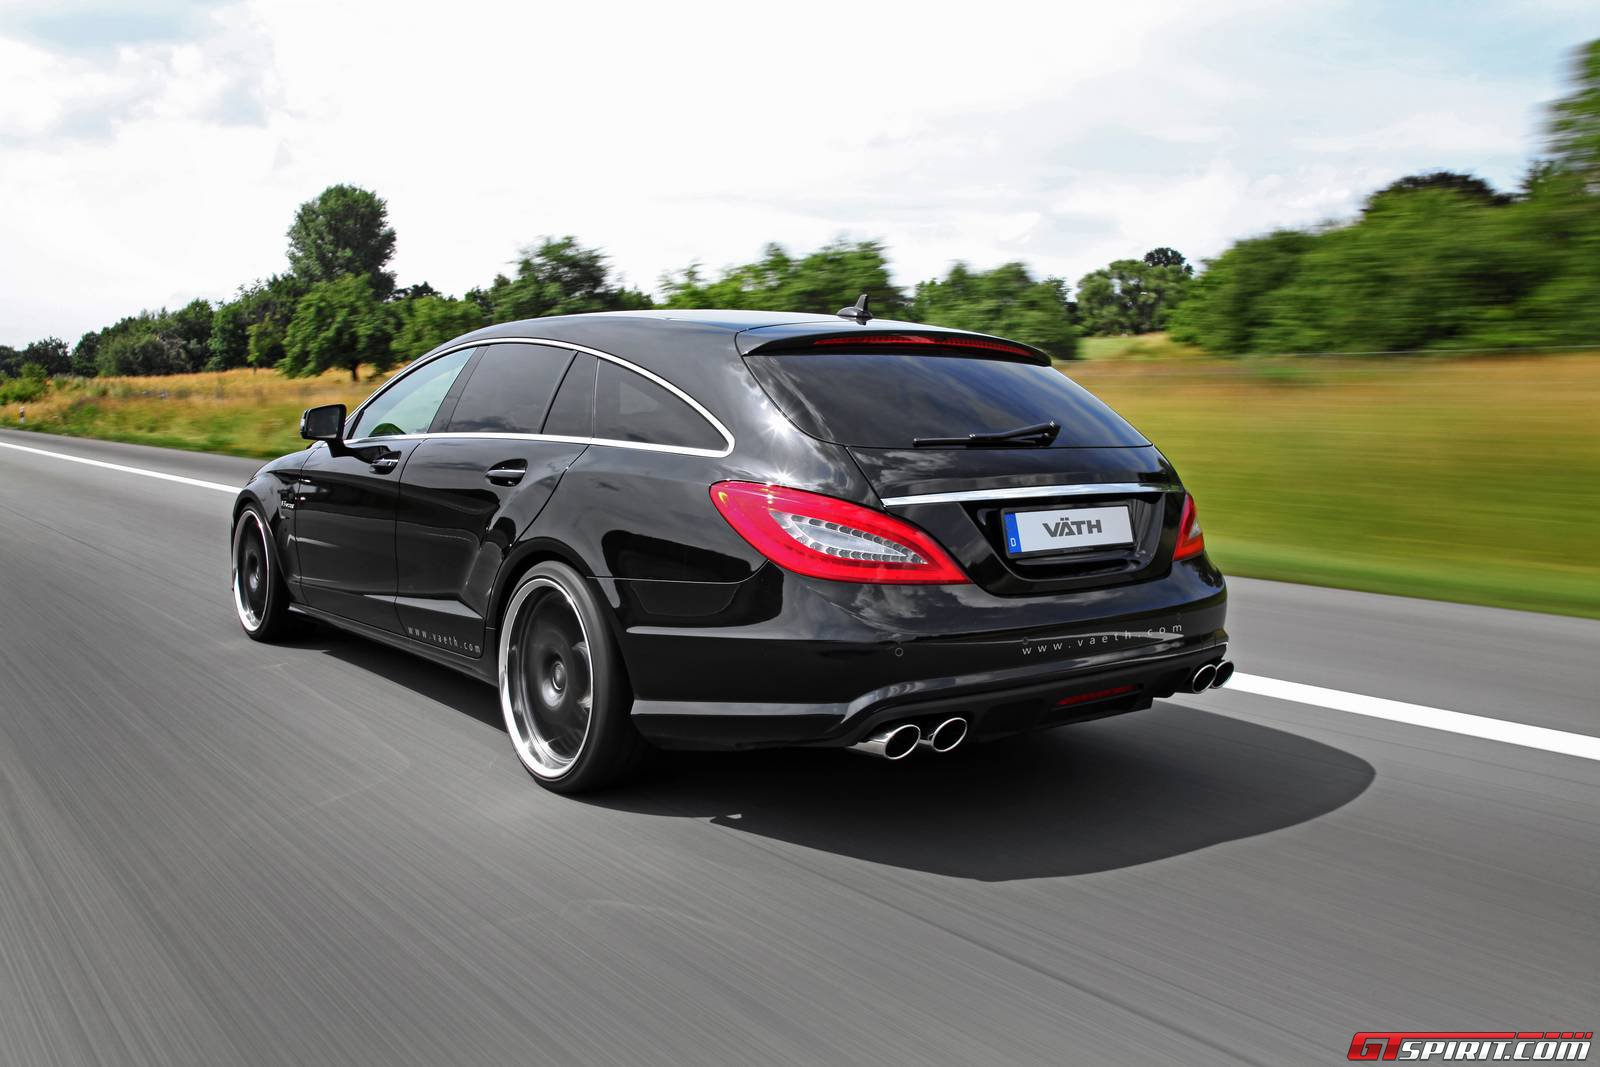 Mercedes Benz Cls Amg Shooting Brake Vath